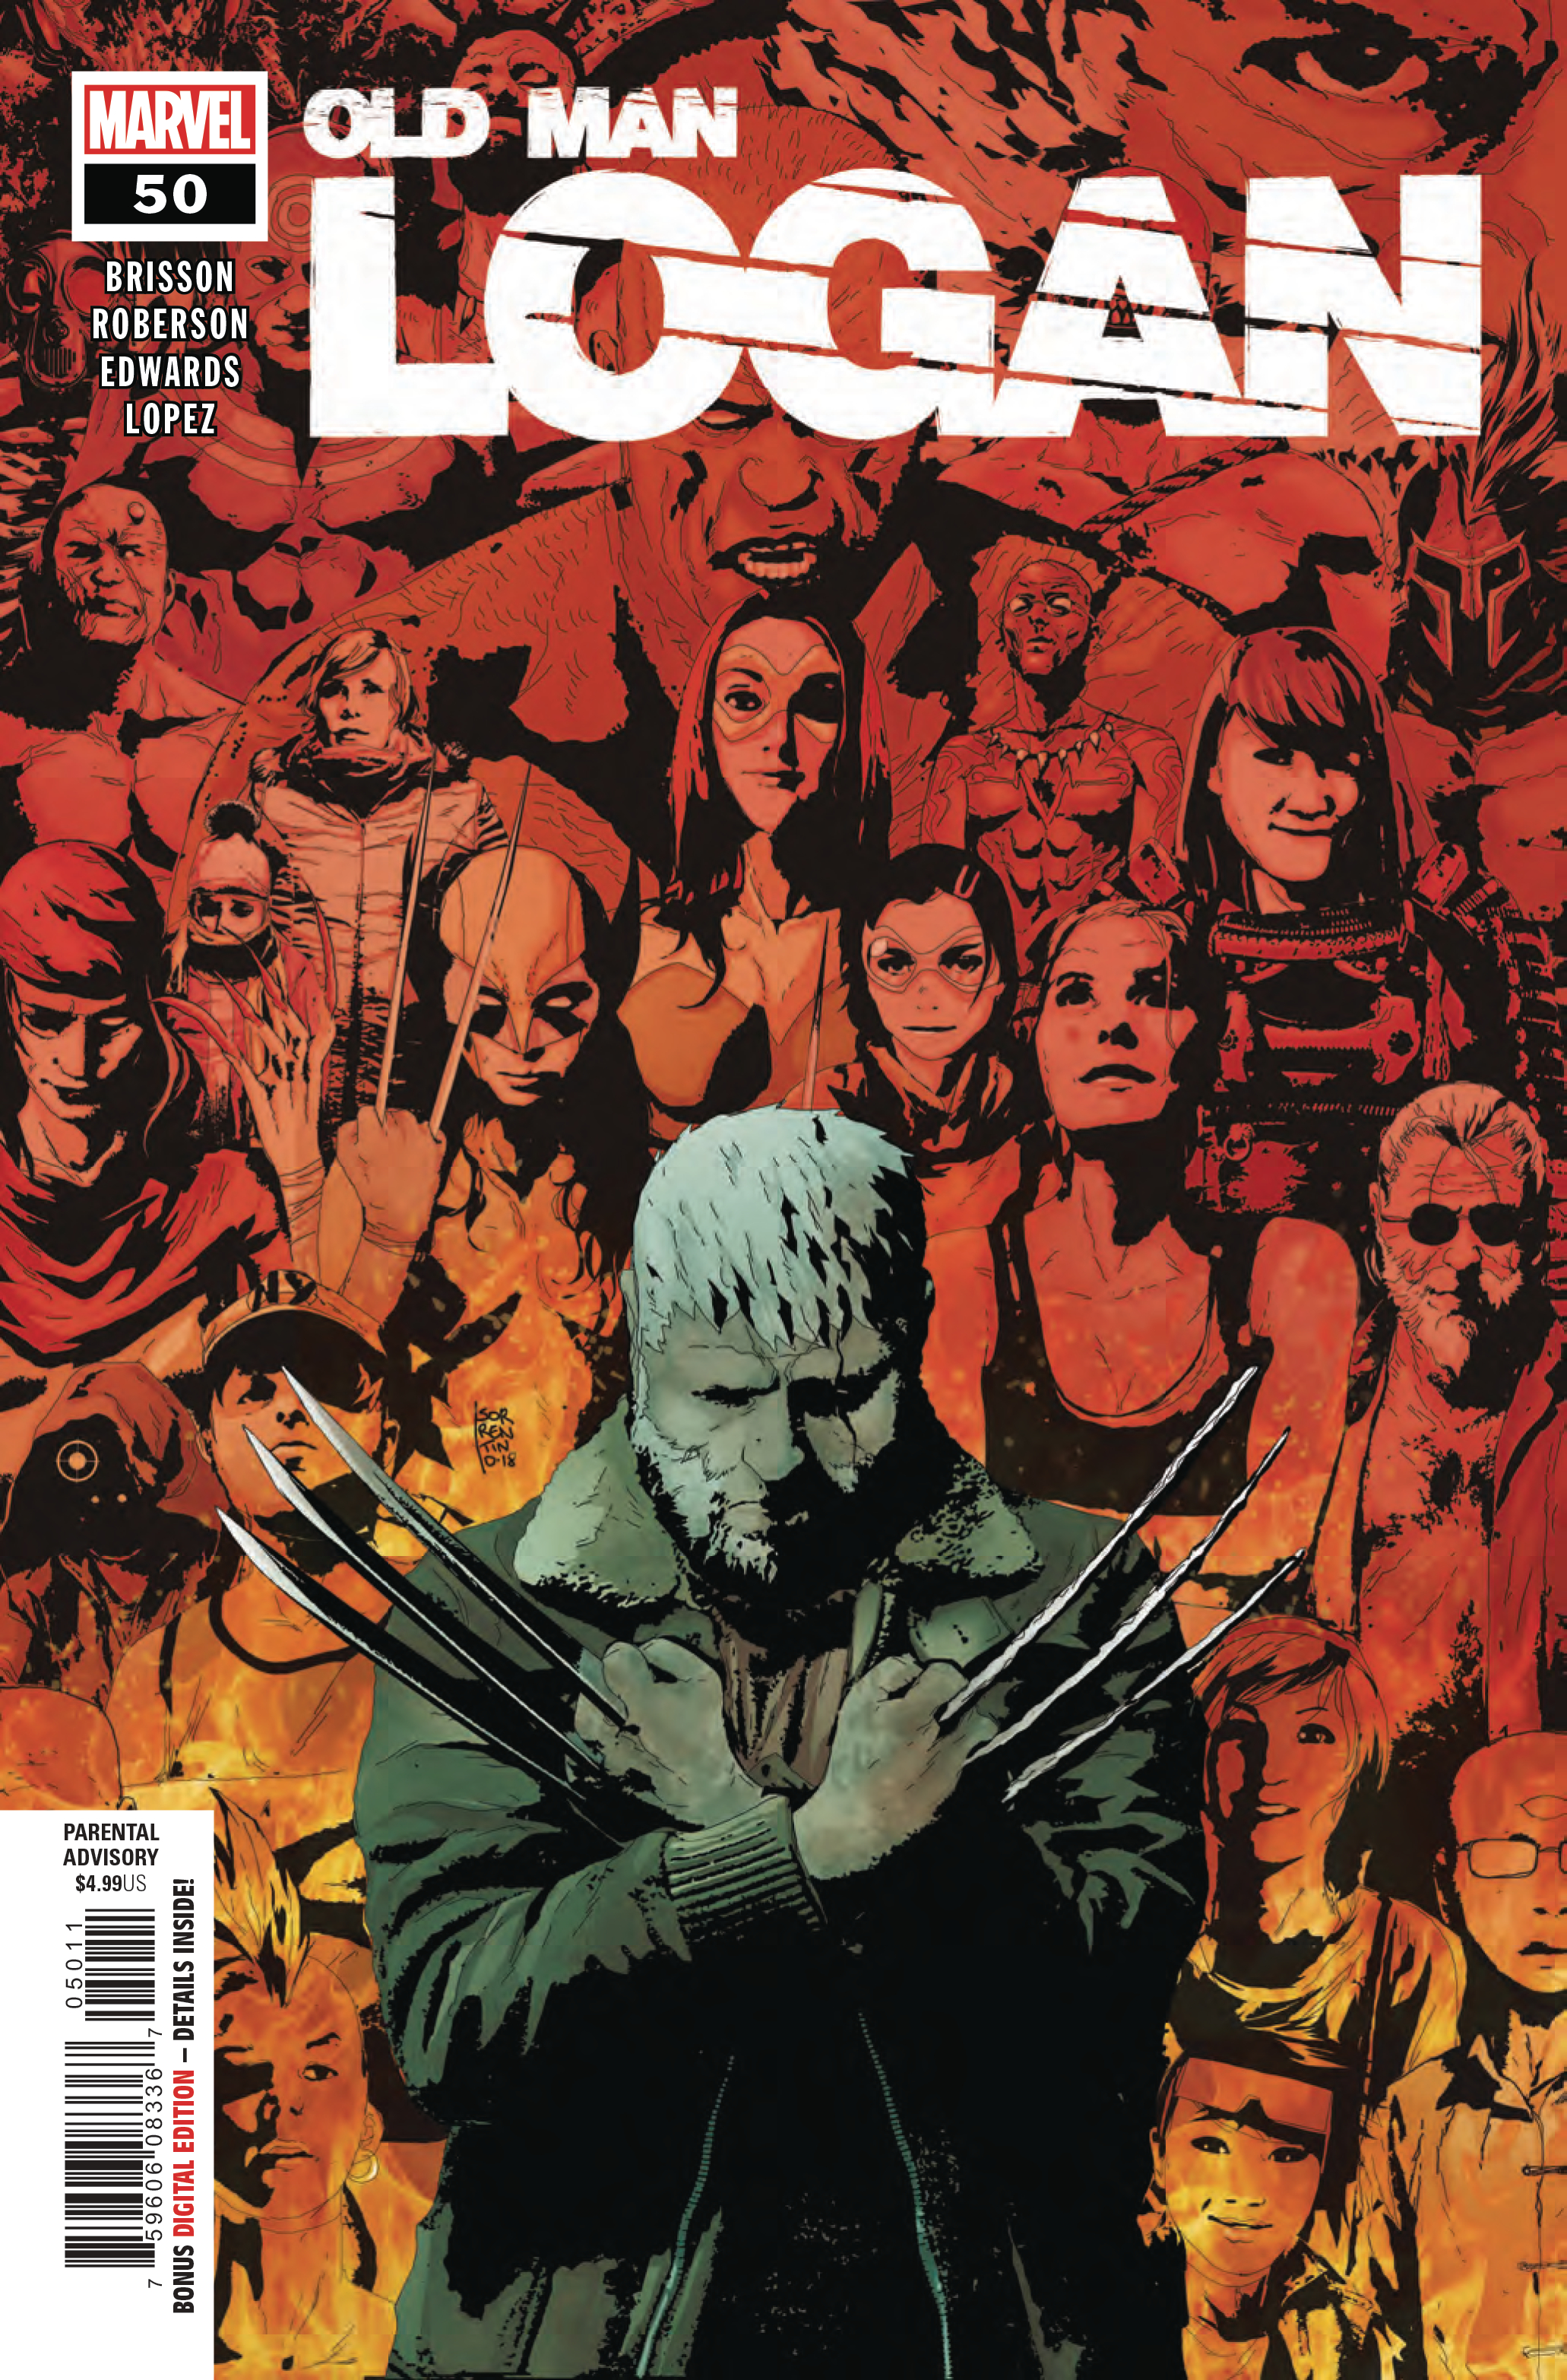 OLD MAN LOGAN #50